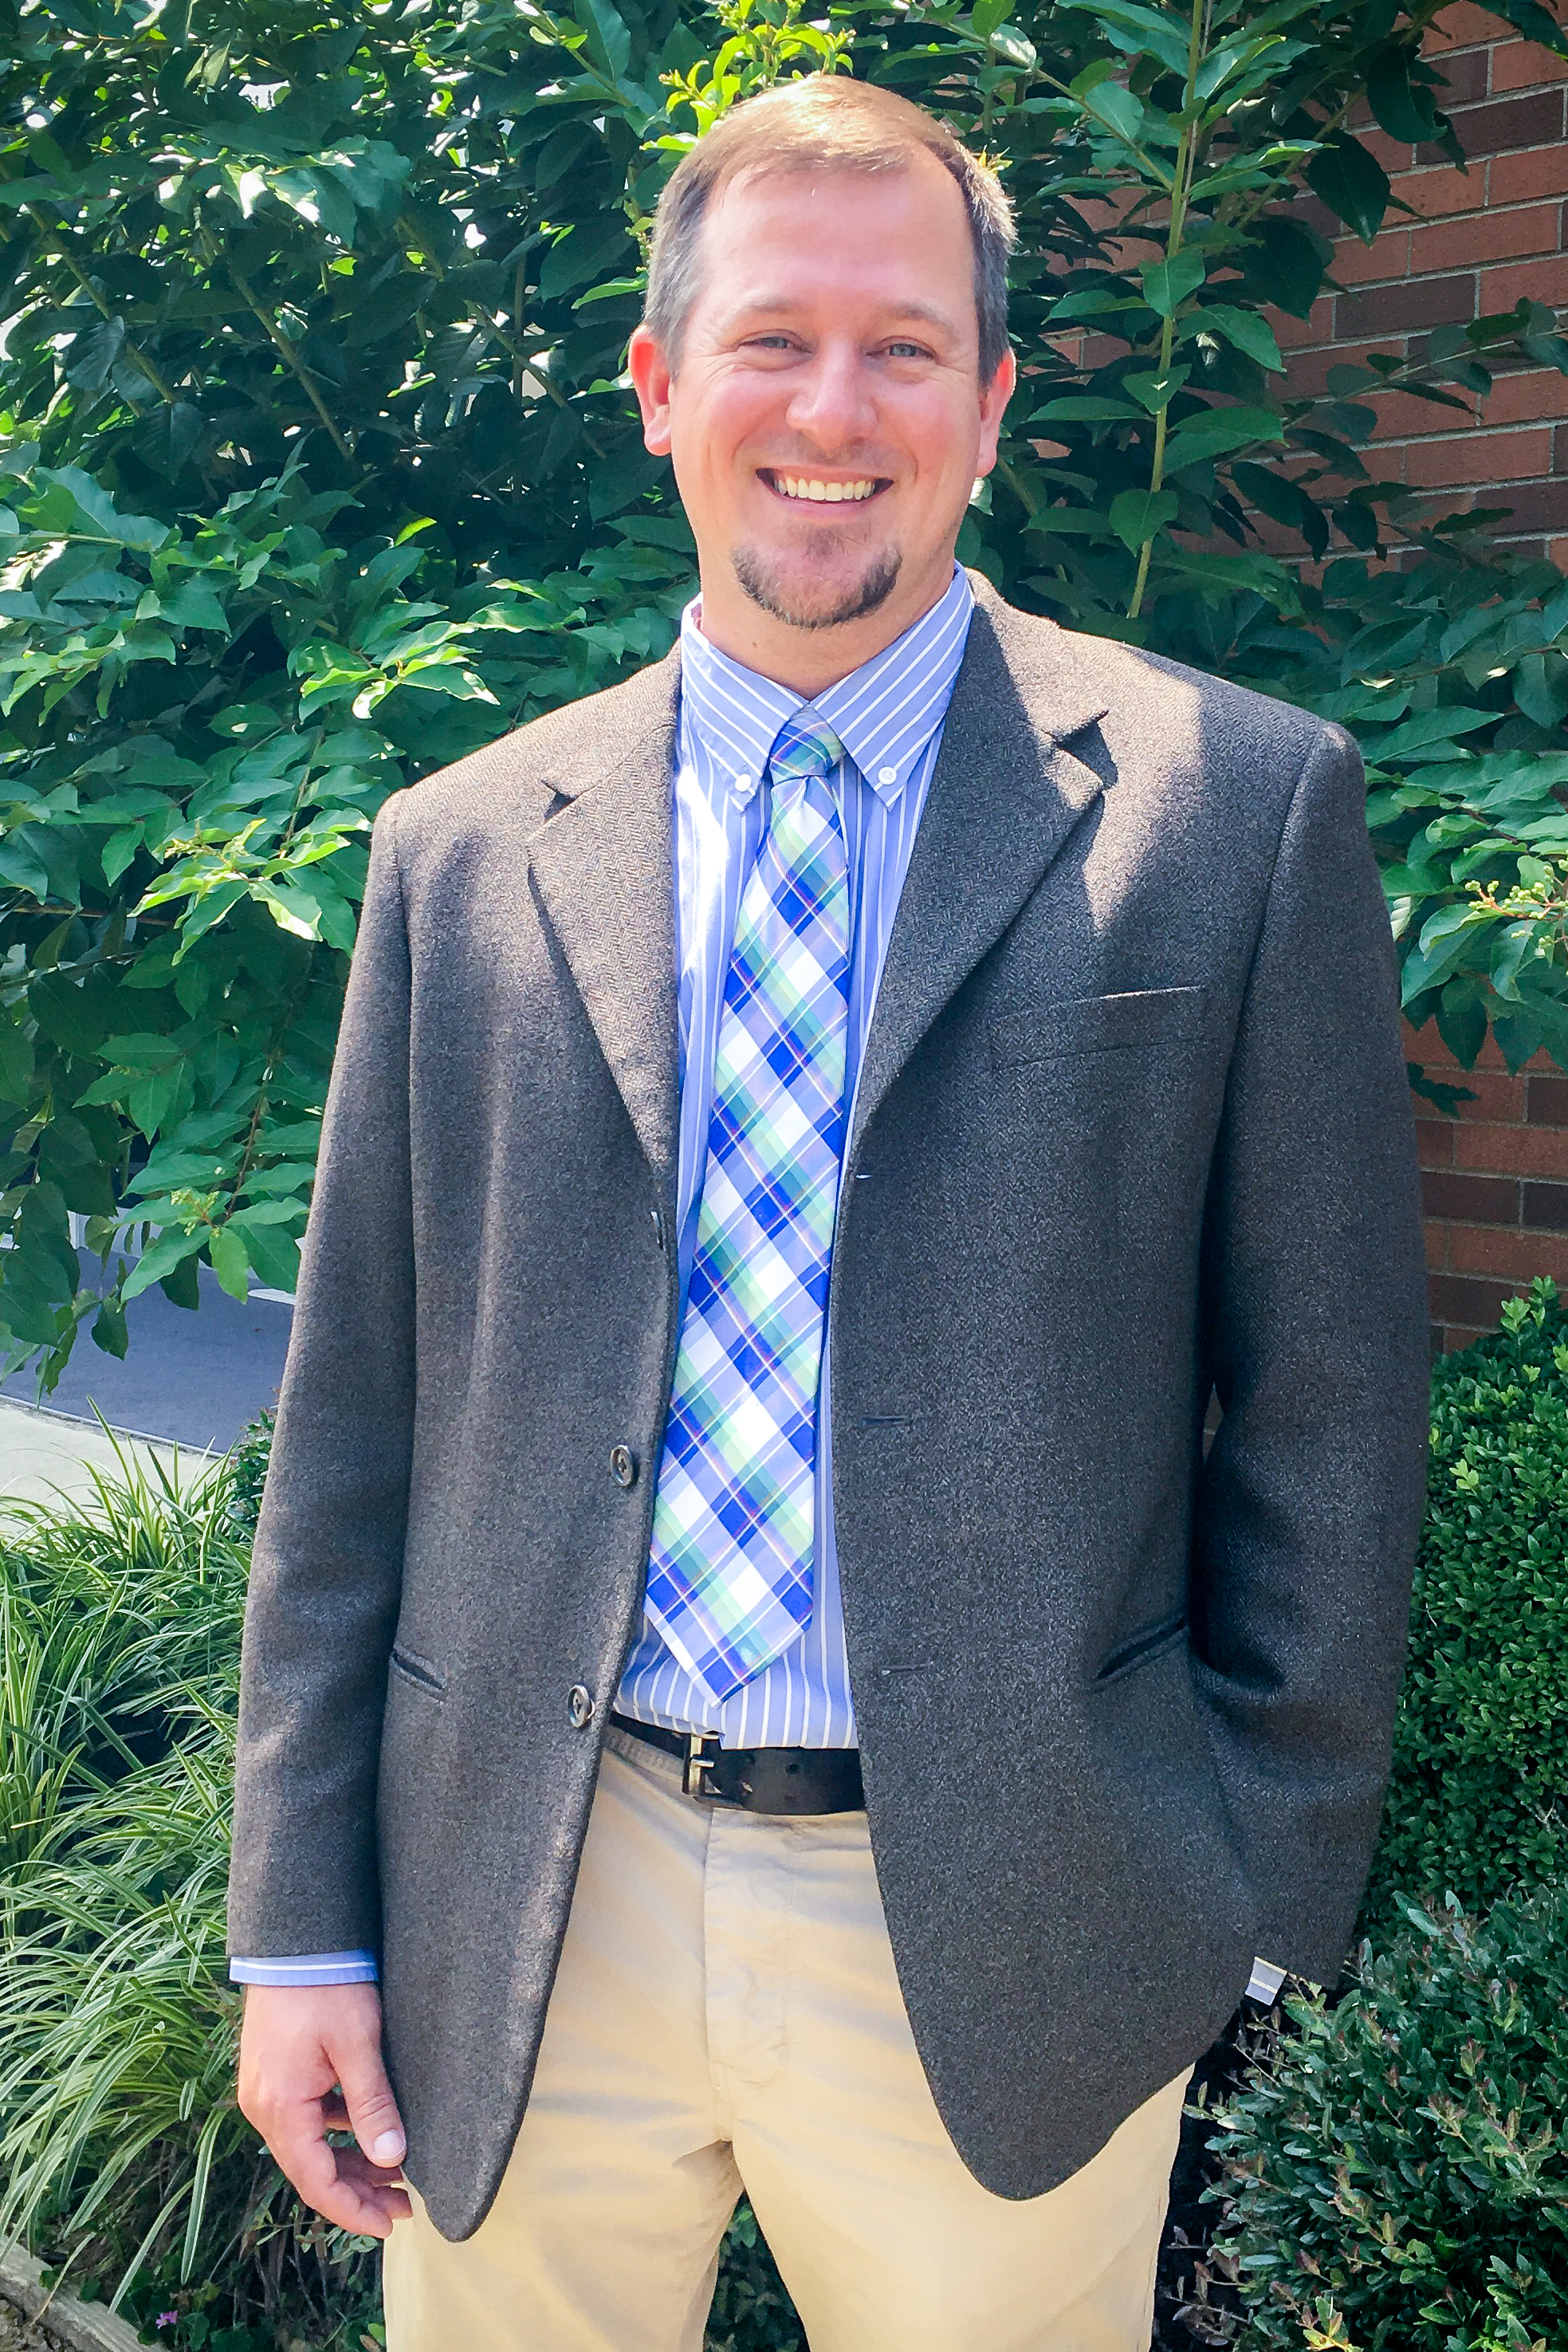 Jonathan Morrison - Youth Minister